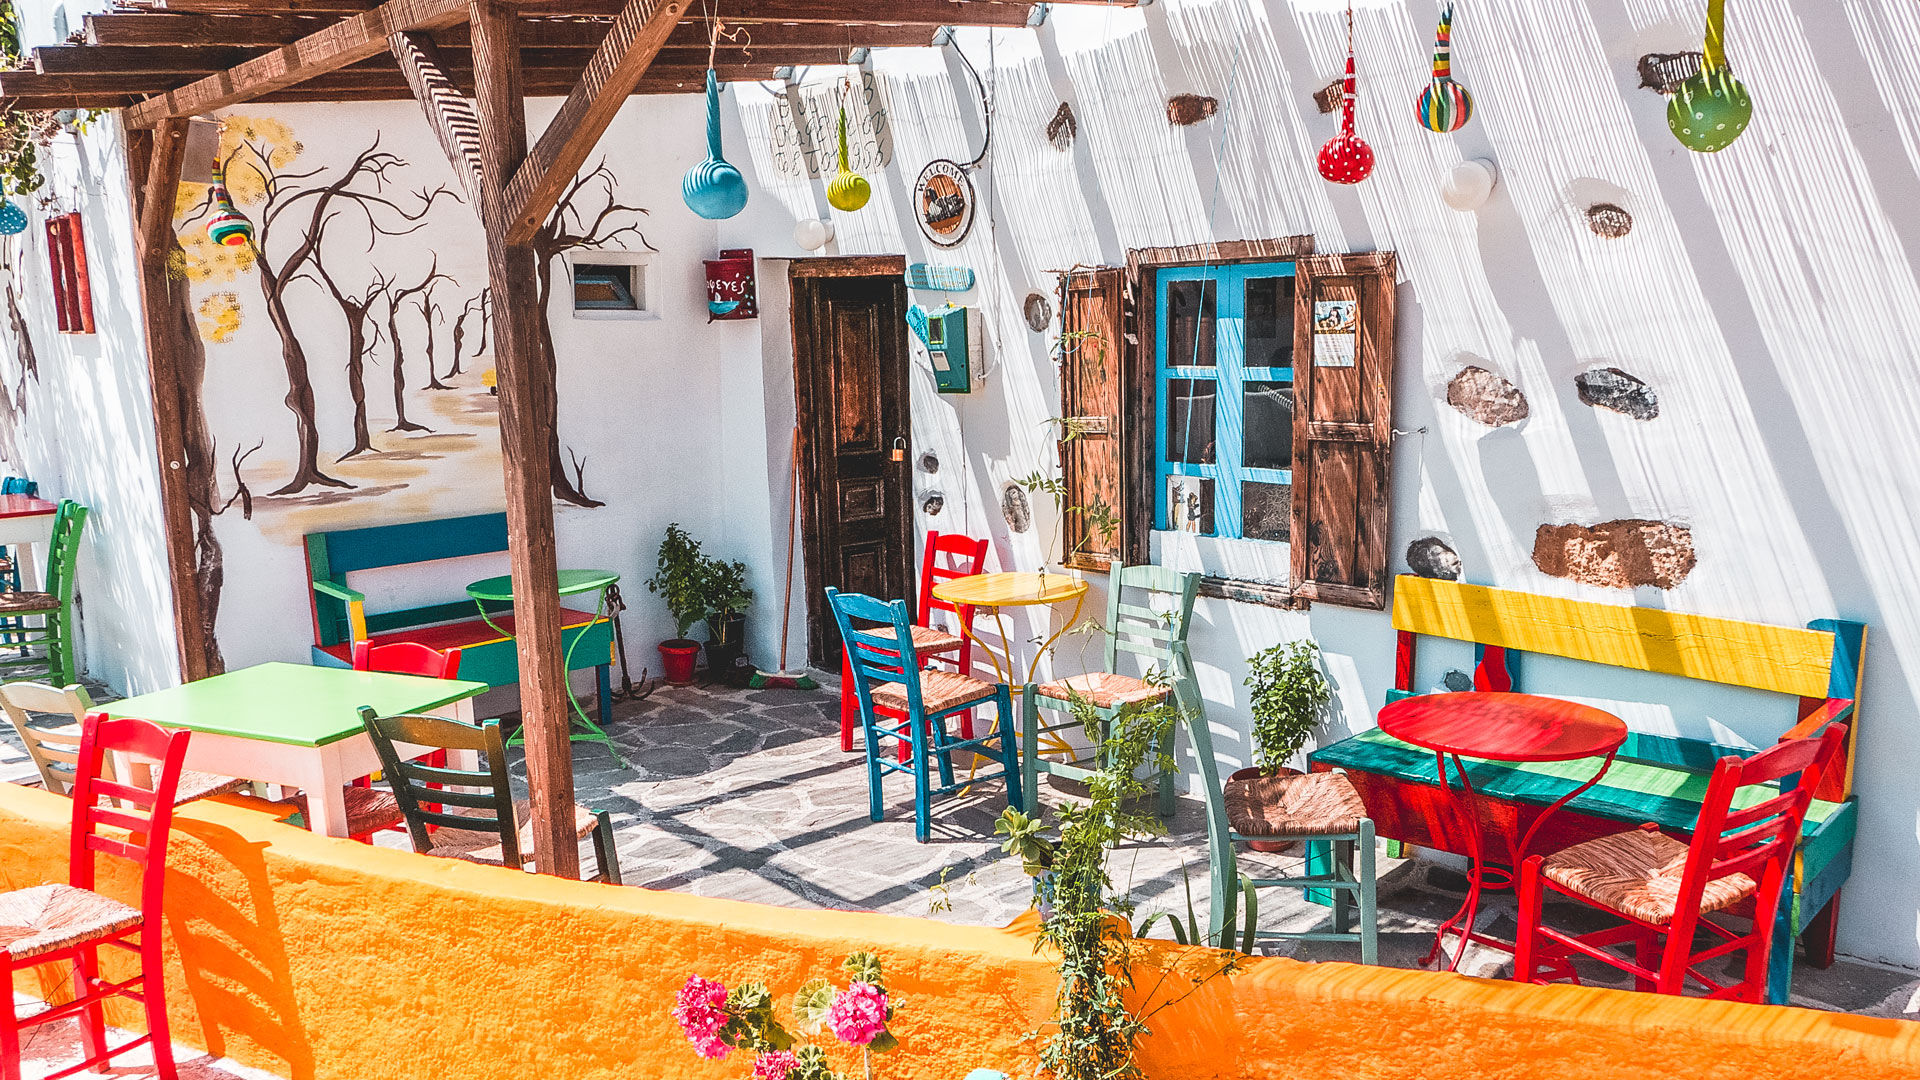 Whitewashed houses, blue windows, flowery courtyards and colorful cafes in Maltezana village, Astypalea